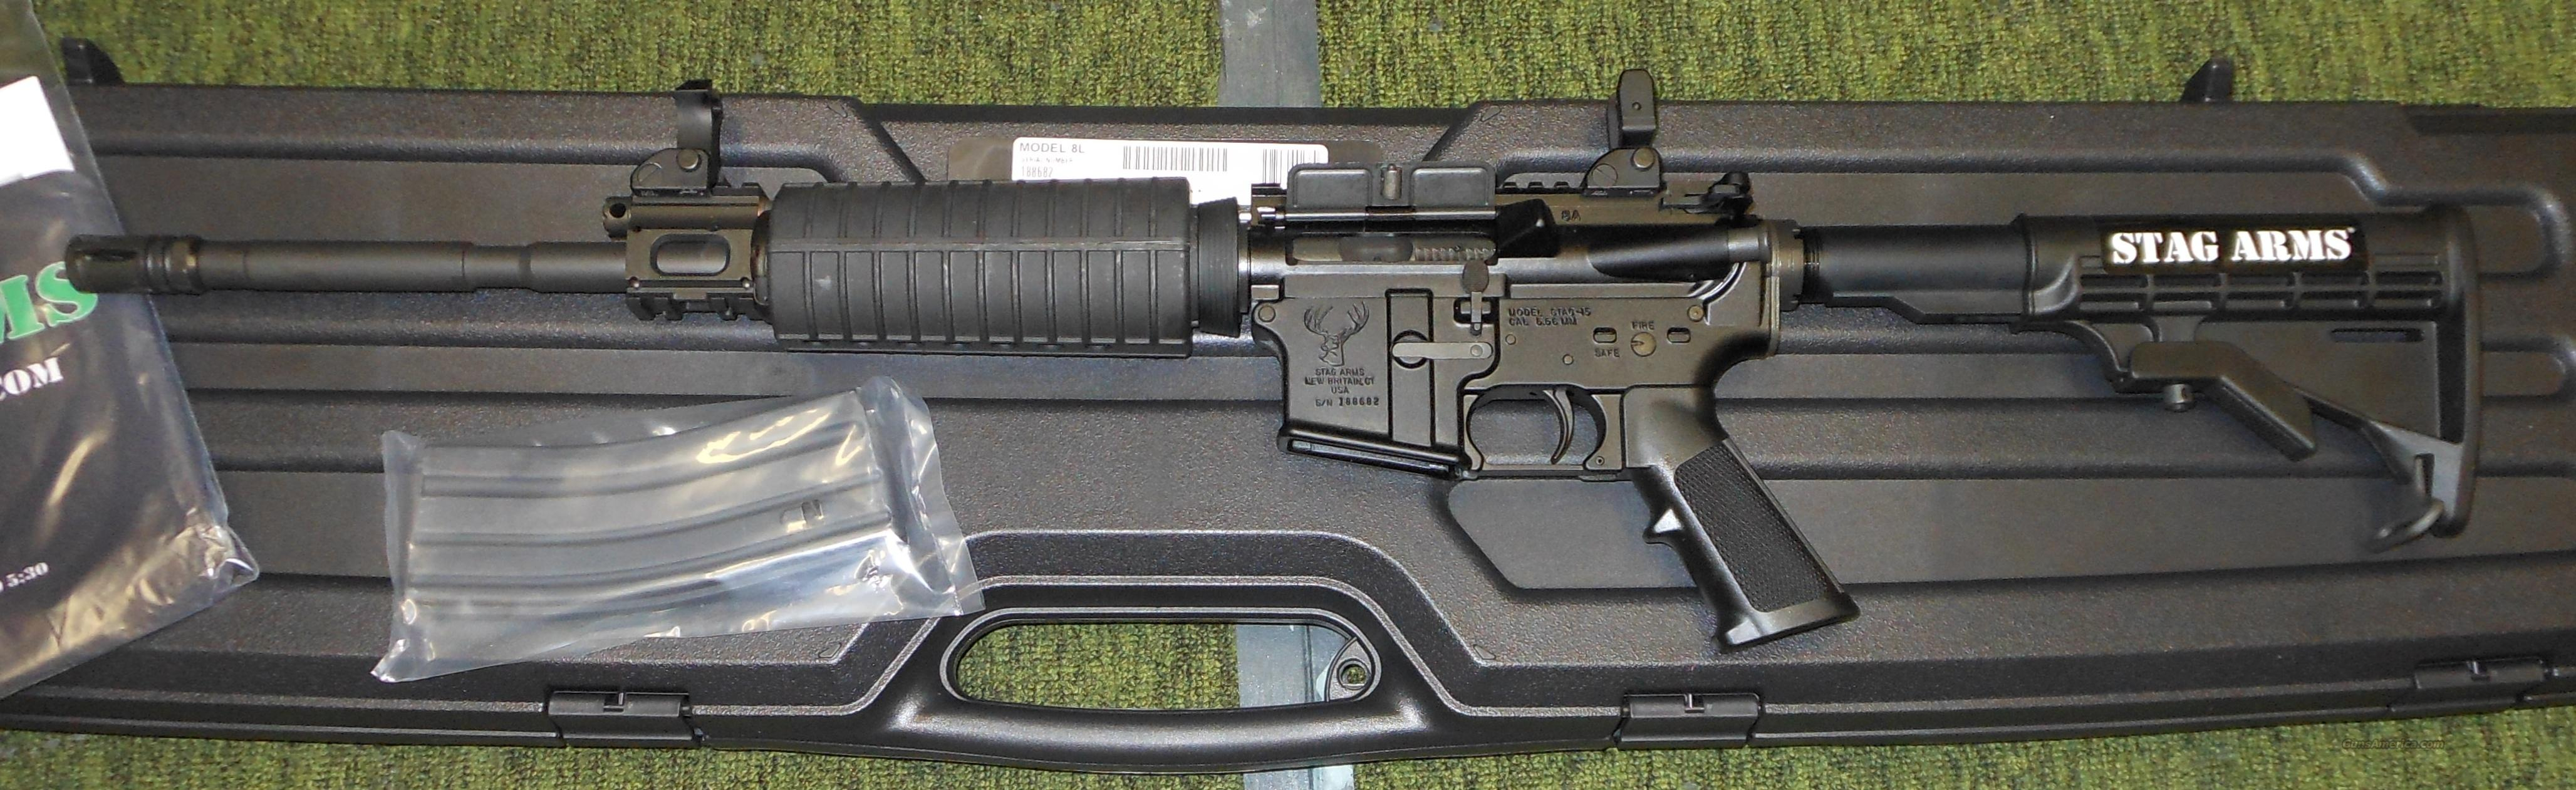 STAG 8L 5.56 NATO (223 REM) AR-15 RIFLE *PISTON, LEFT-HANDED*  Guns > Rifles > Stag Arms > Complete Rifles